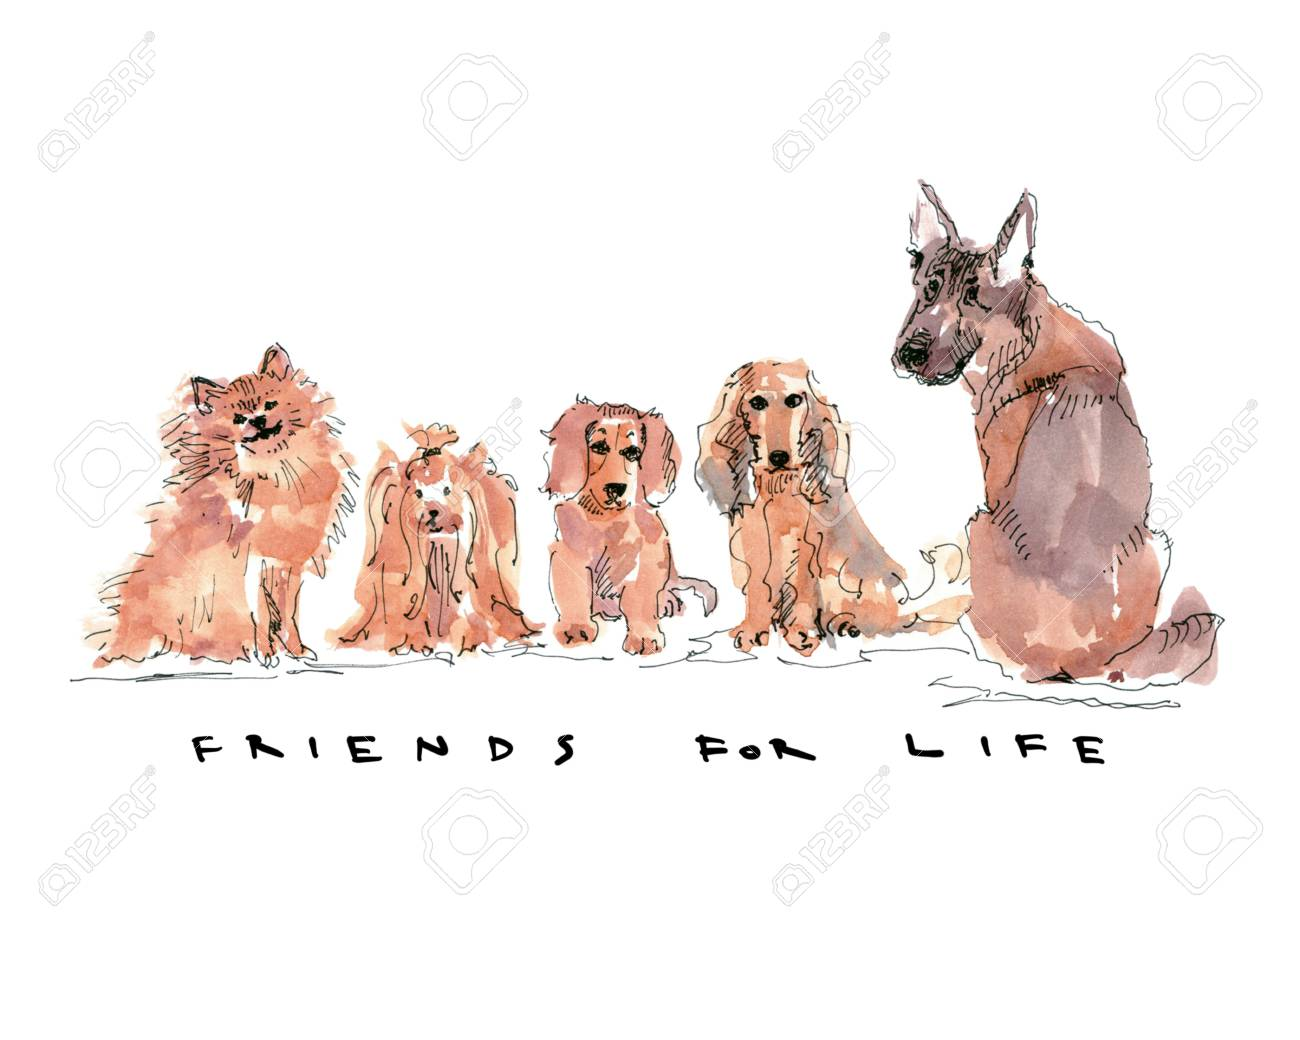 Dogs sitting in a row with text friends for life - 109991121